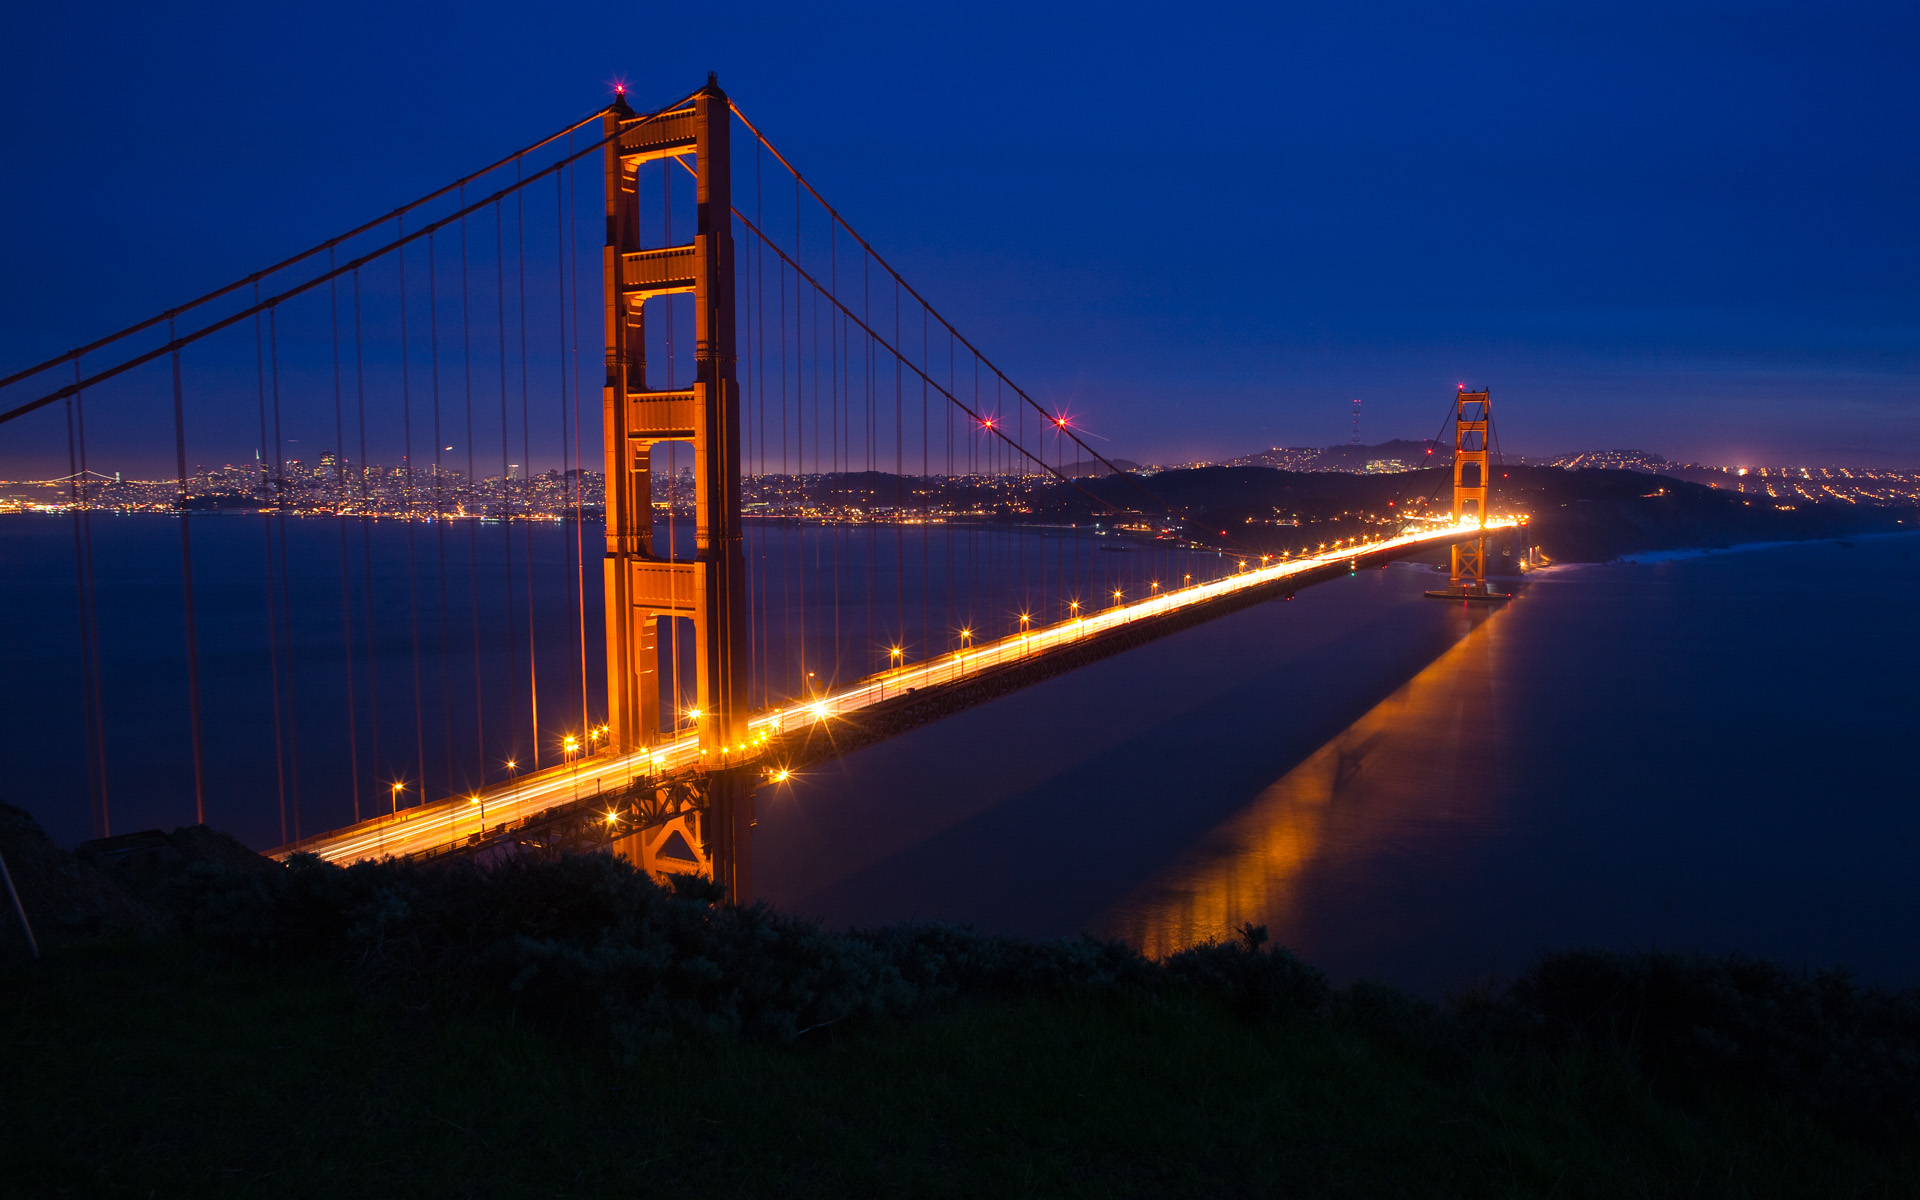 Wallpapers and pictures San Francisco Golden Gate Bridge wallpaper 1920x1200